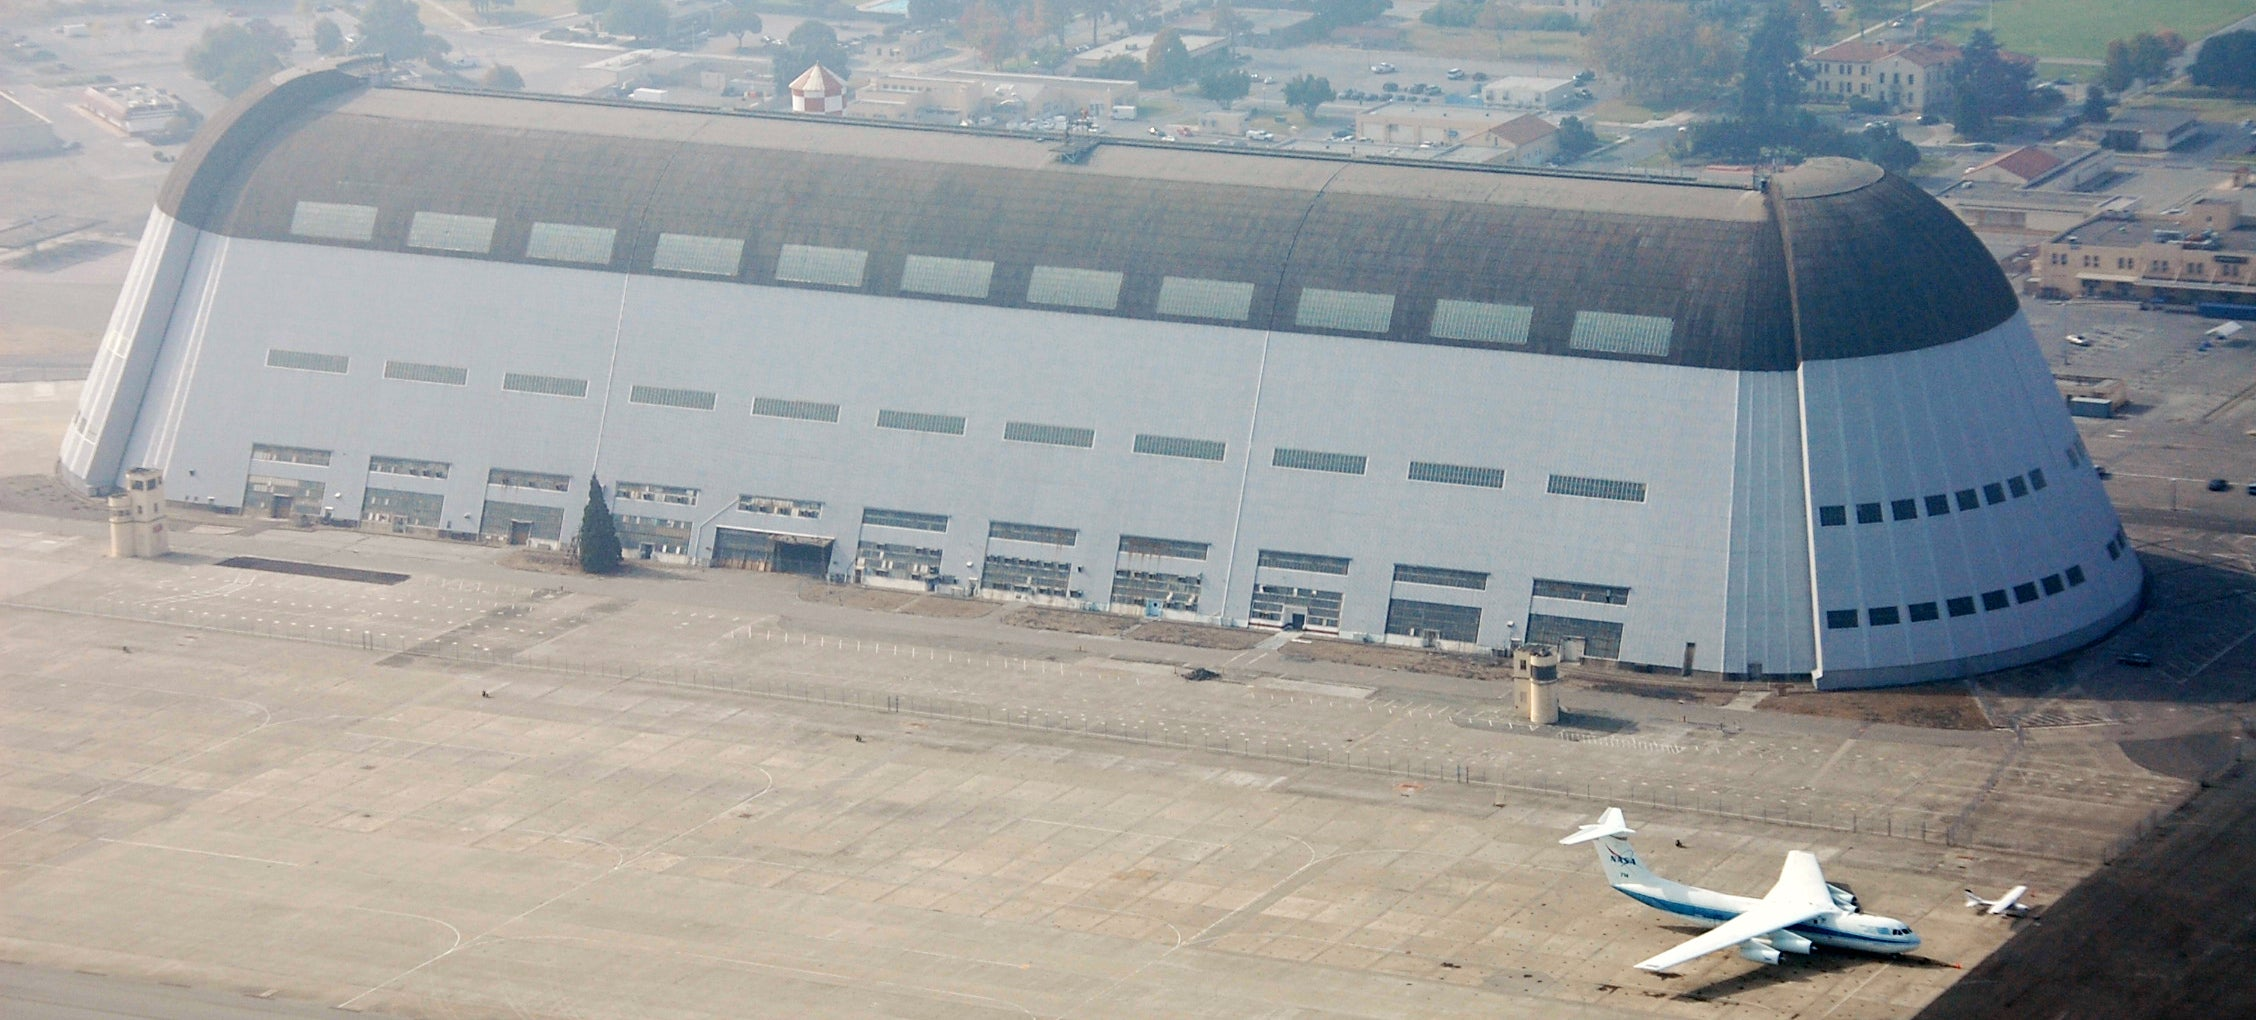 Google's Spending $US1 Billion on an Old NASA Hangar, No One Knows Why